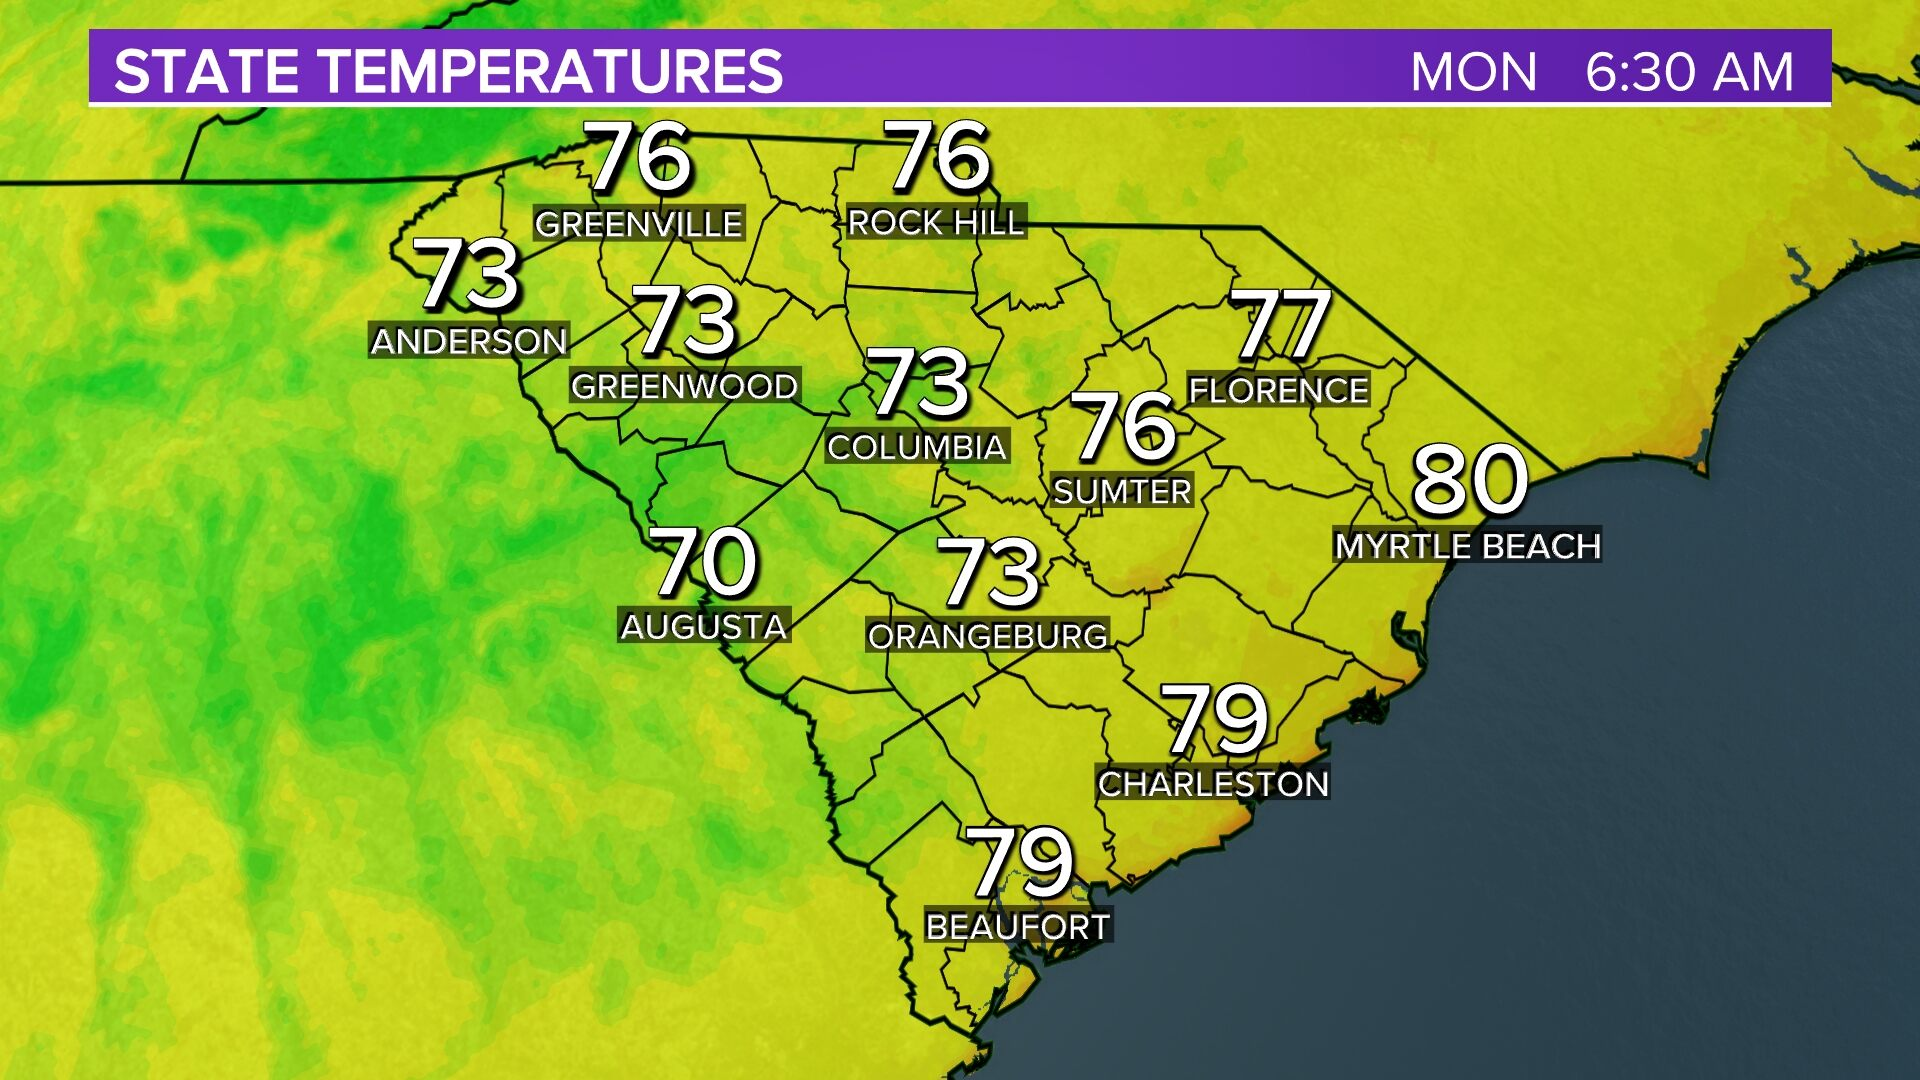 South Carolina Temps